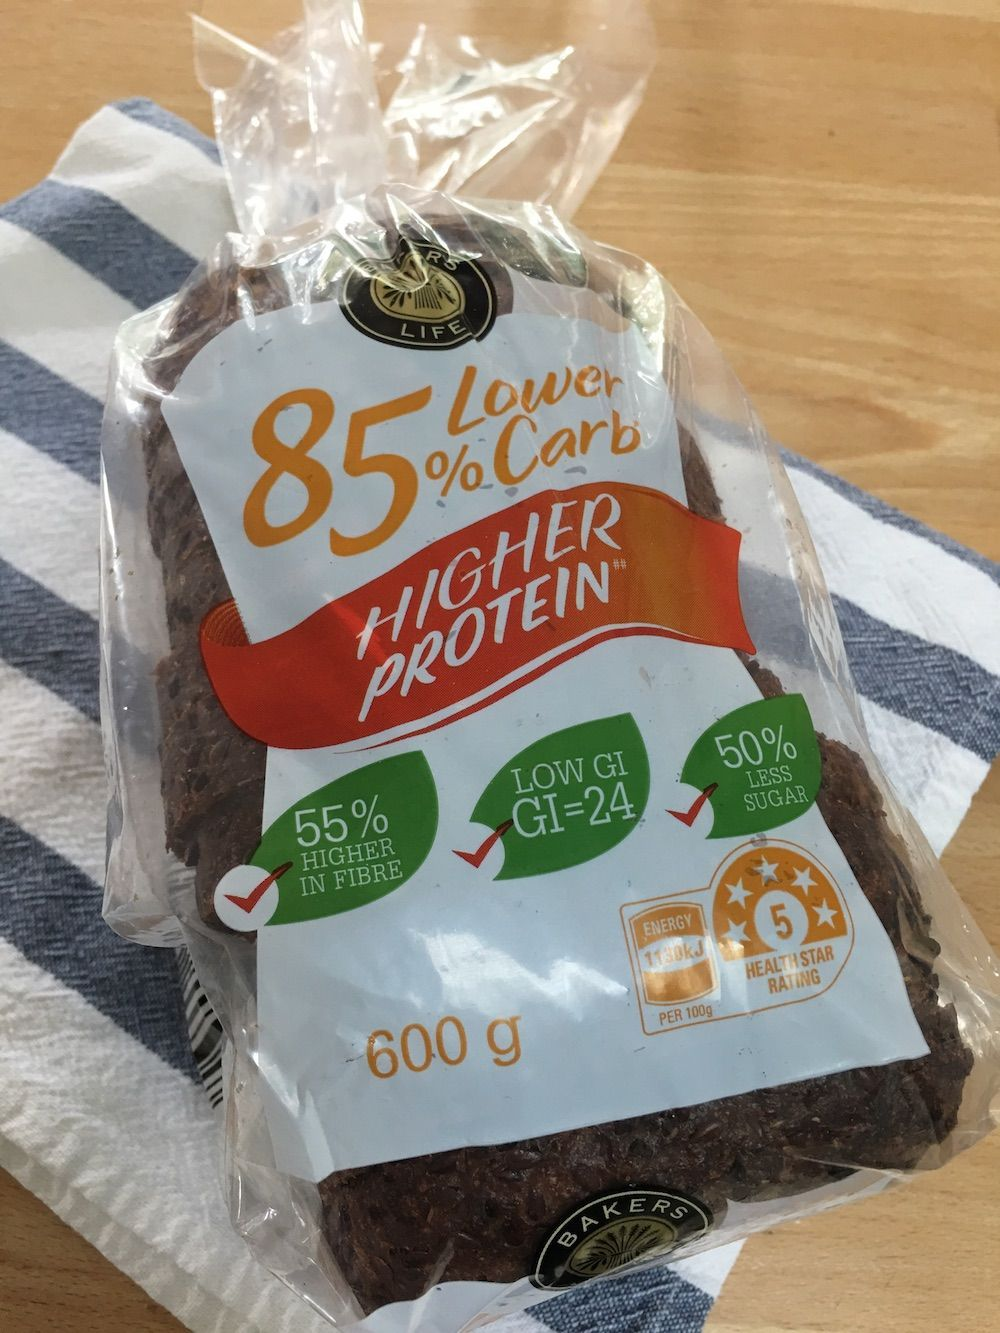 Image result for The Baker's Life 85 percent Lower Carb